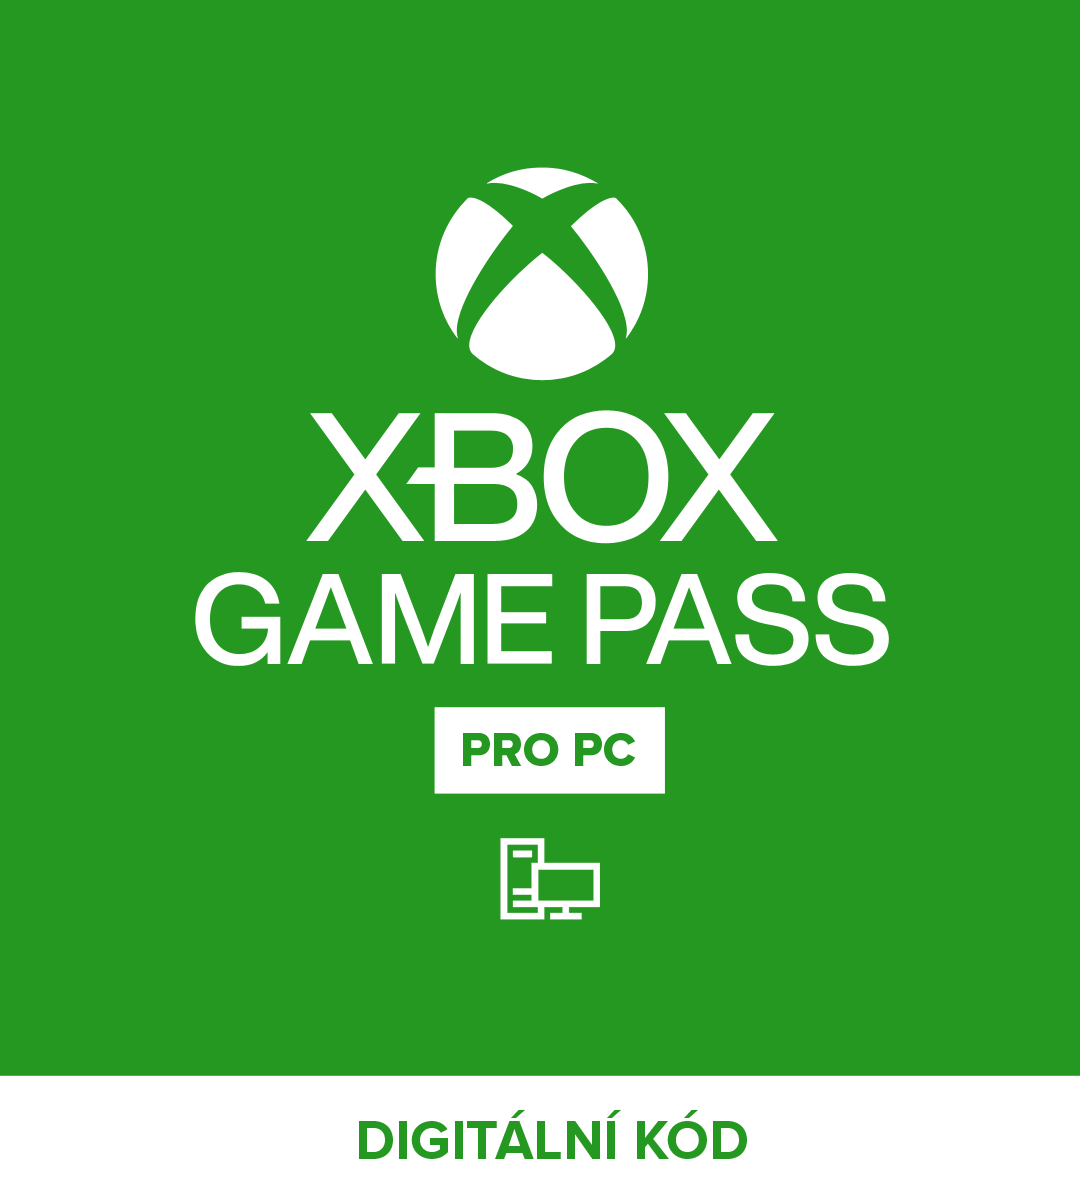 Xbox Game Pass pro PC